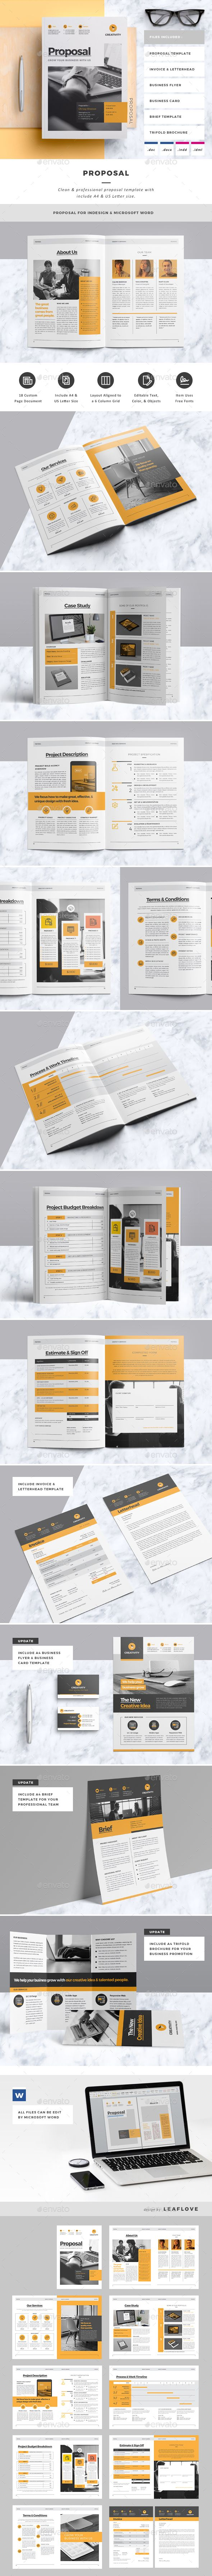 Proposal / Clean & Professional Proposal Template. This layout is suitable for any project purpose. Very easy to use and customise.